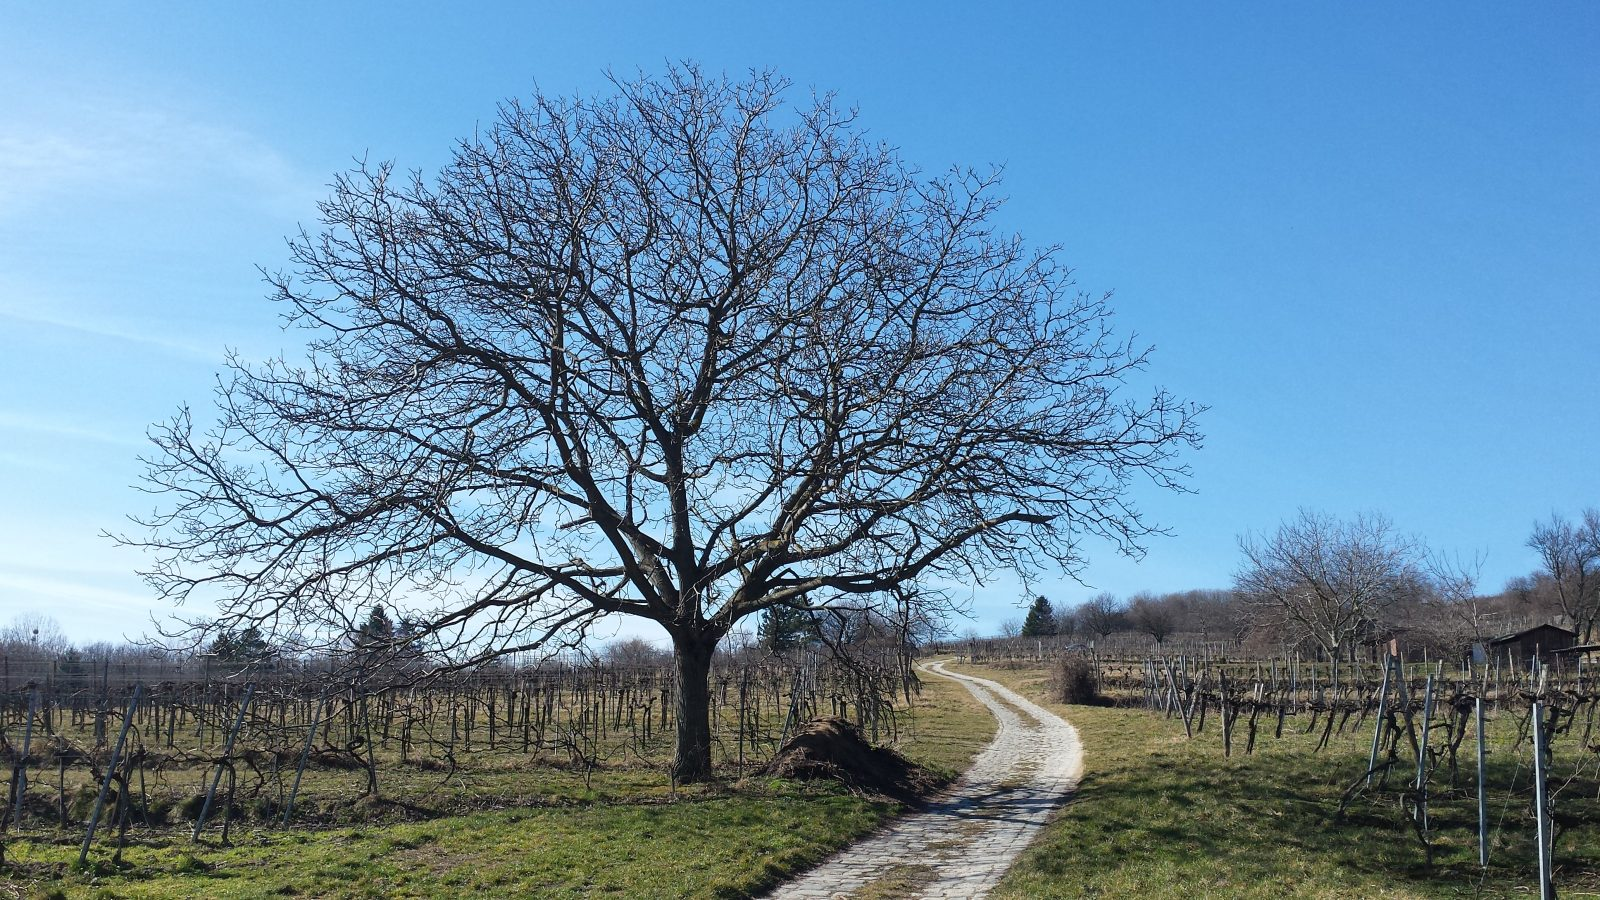 Picture shows a path leading up a wineyard. Next to the path is a tree. The sky is blue